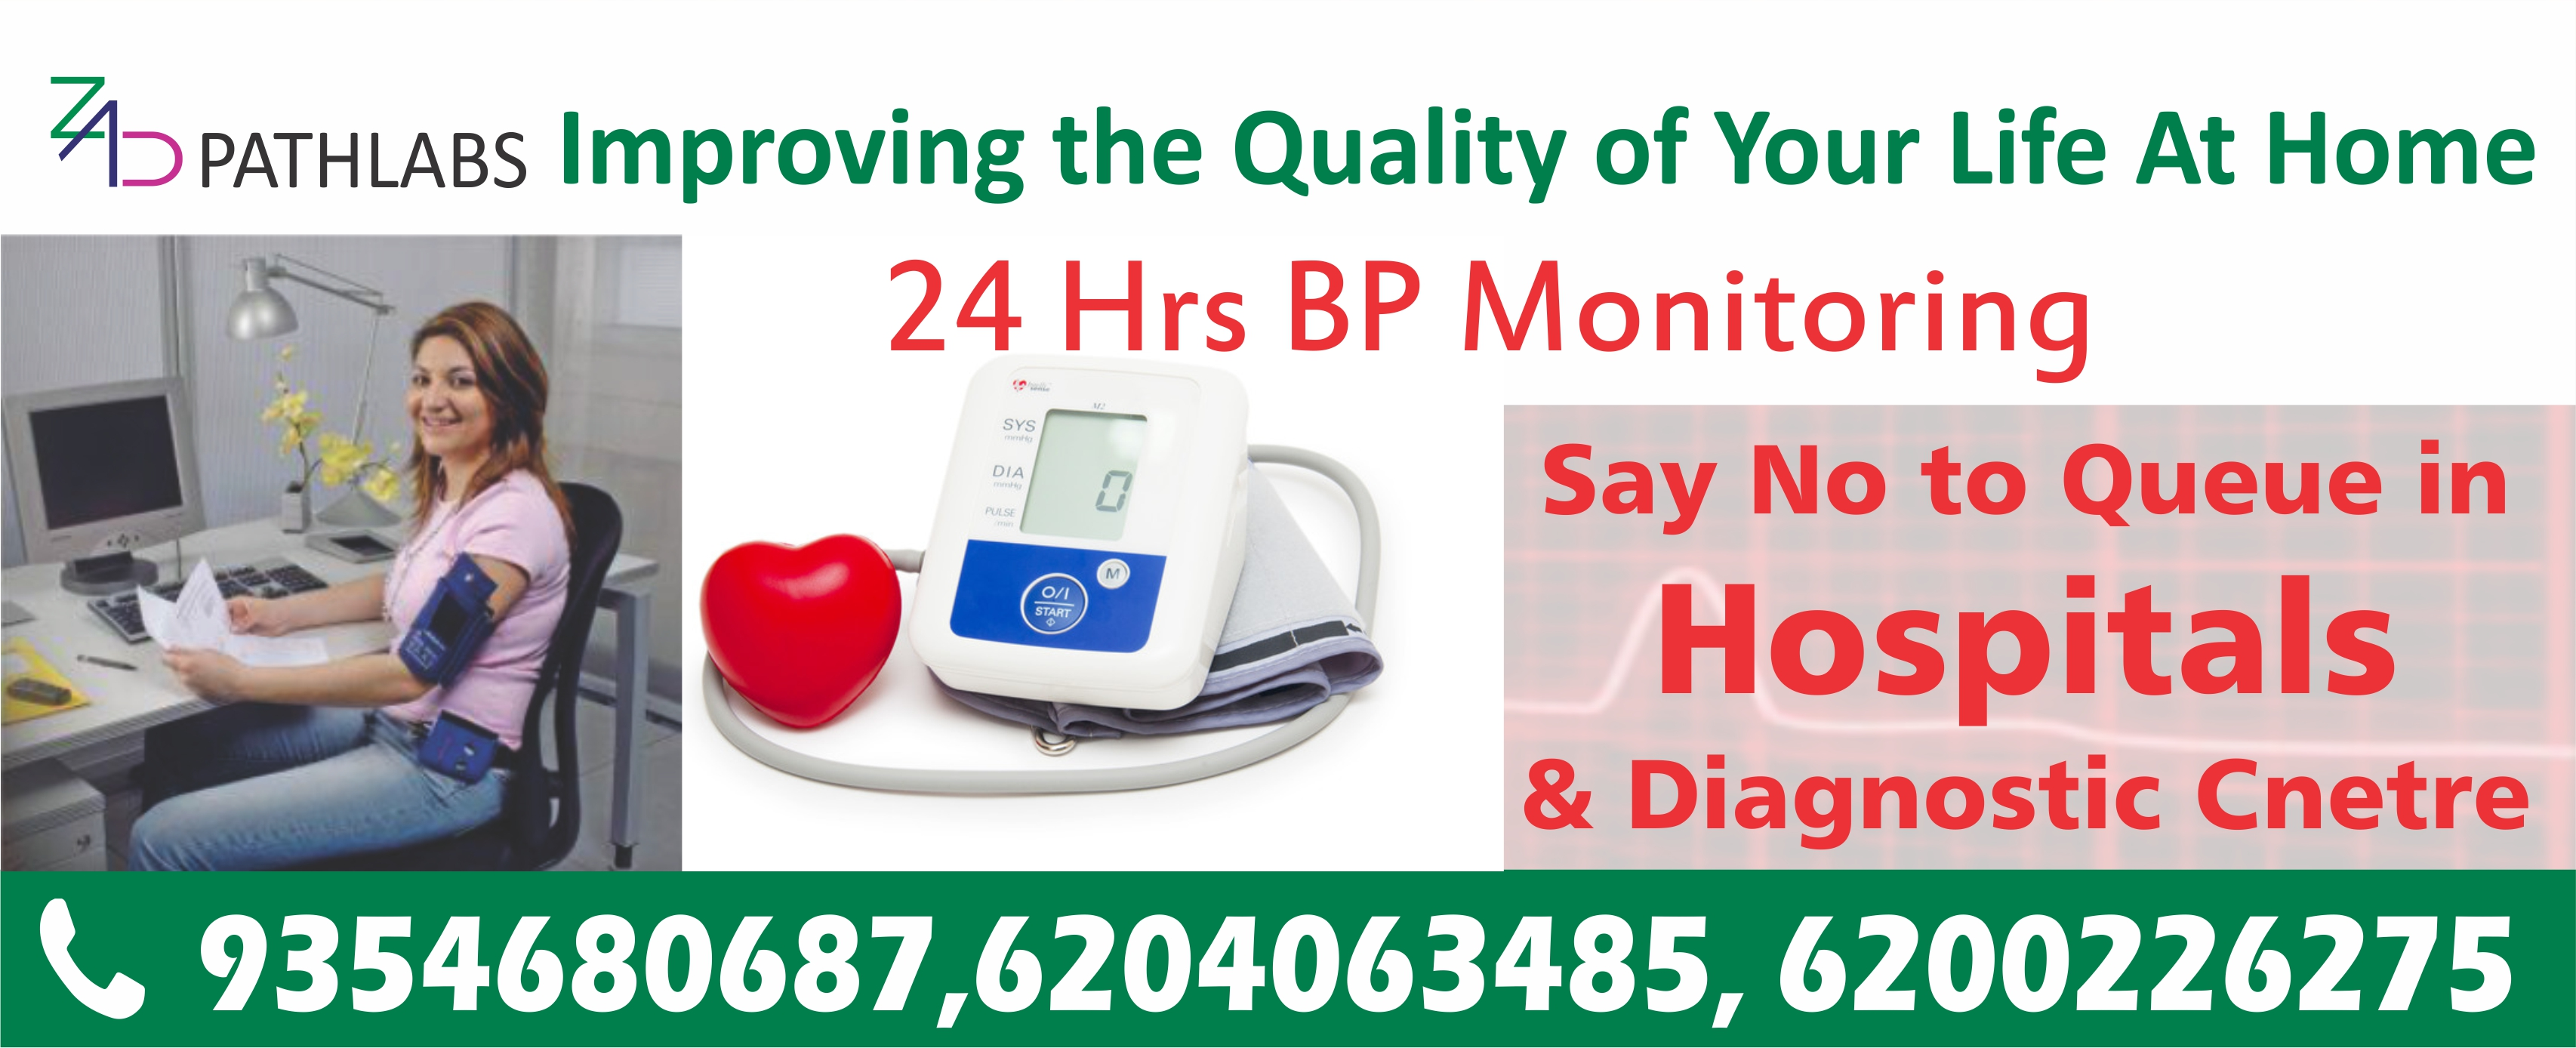 Zad Path Labs 6204063485 Ecg Test At Home In Bharat